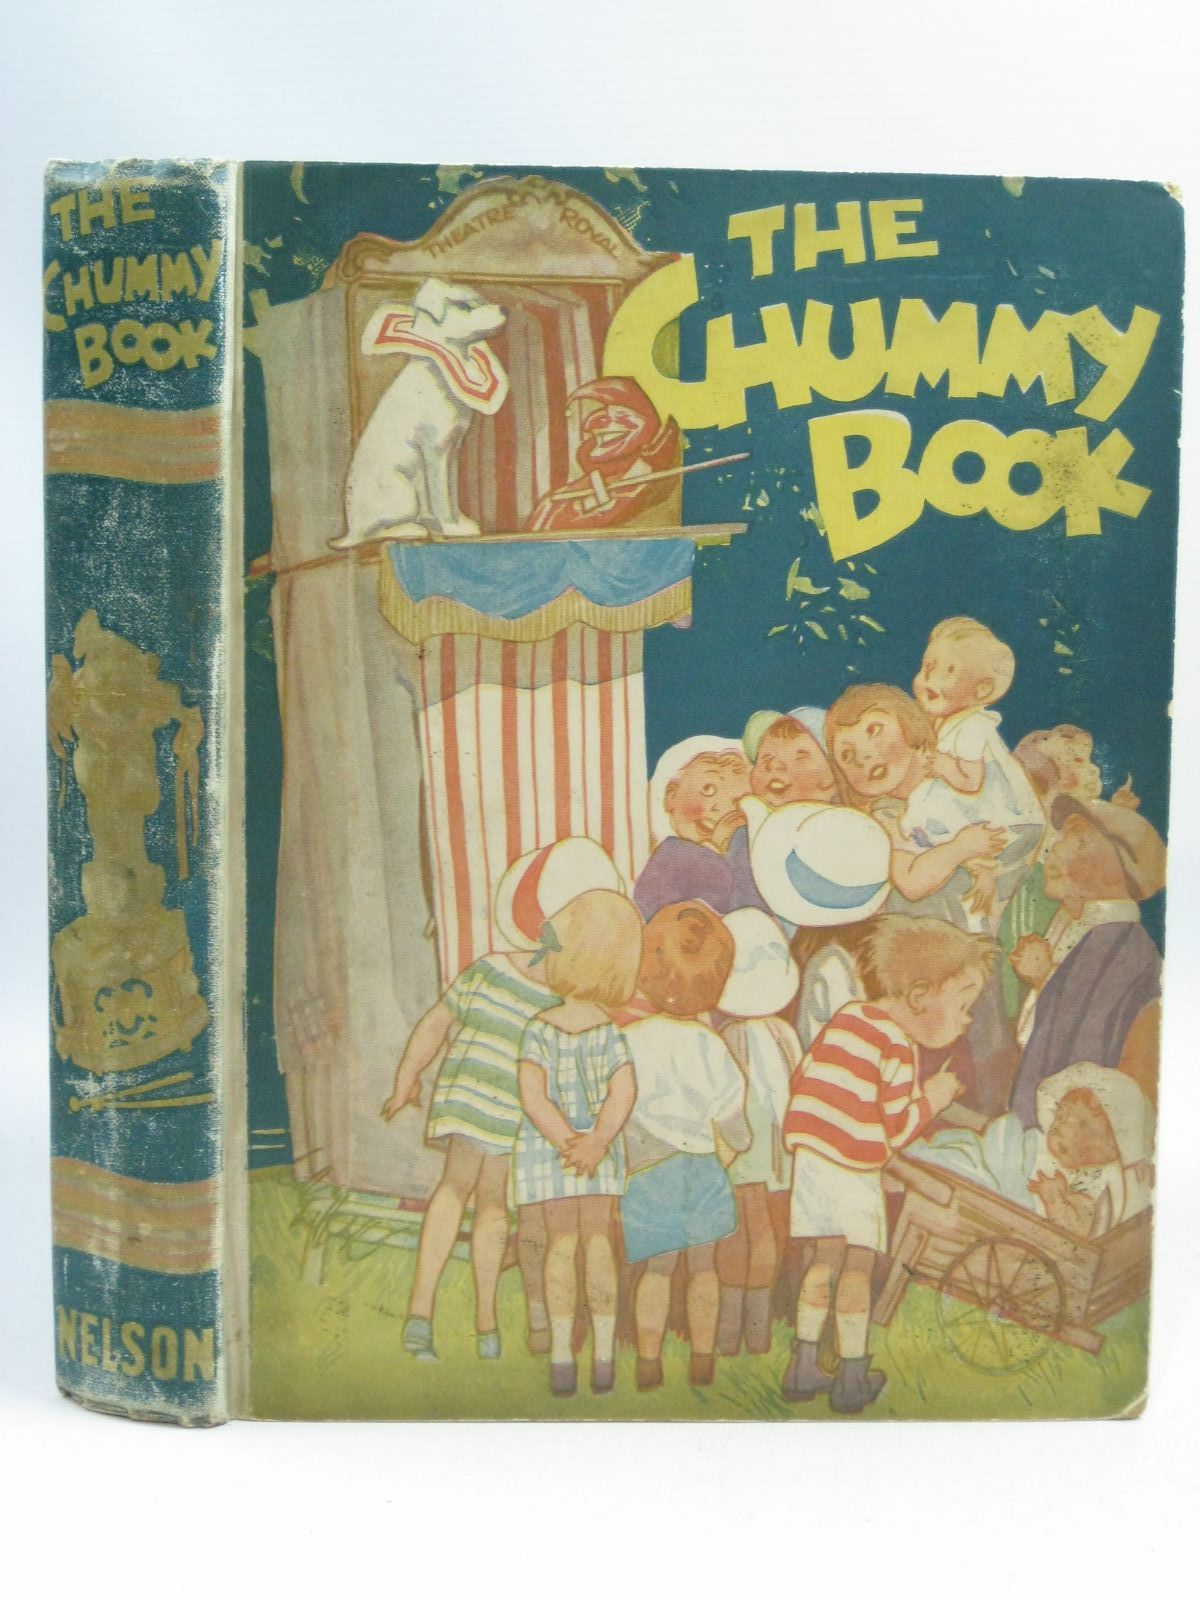 Photo of THE CHUMMY BOOK - THIRTEENTH YEAR written by Chisholm, Edwin Russell, Dorothy Herbertson, Agnes Grozier Hart, Frank Mercer, Joyce et al, illustrated by Wood, Lawson Preston, Chloe Studdy, G.E. Woolley, Harry Hart, Frank et al., published by Thomas Nelson and Sons Ltd. (STOCK CODE: 1505441)  for sale by Stella & Rose's Books